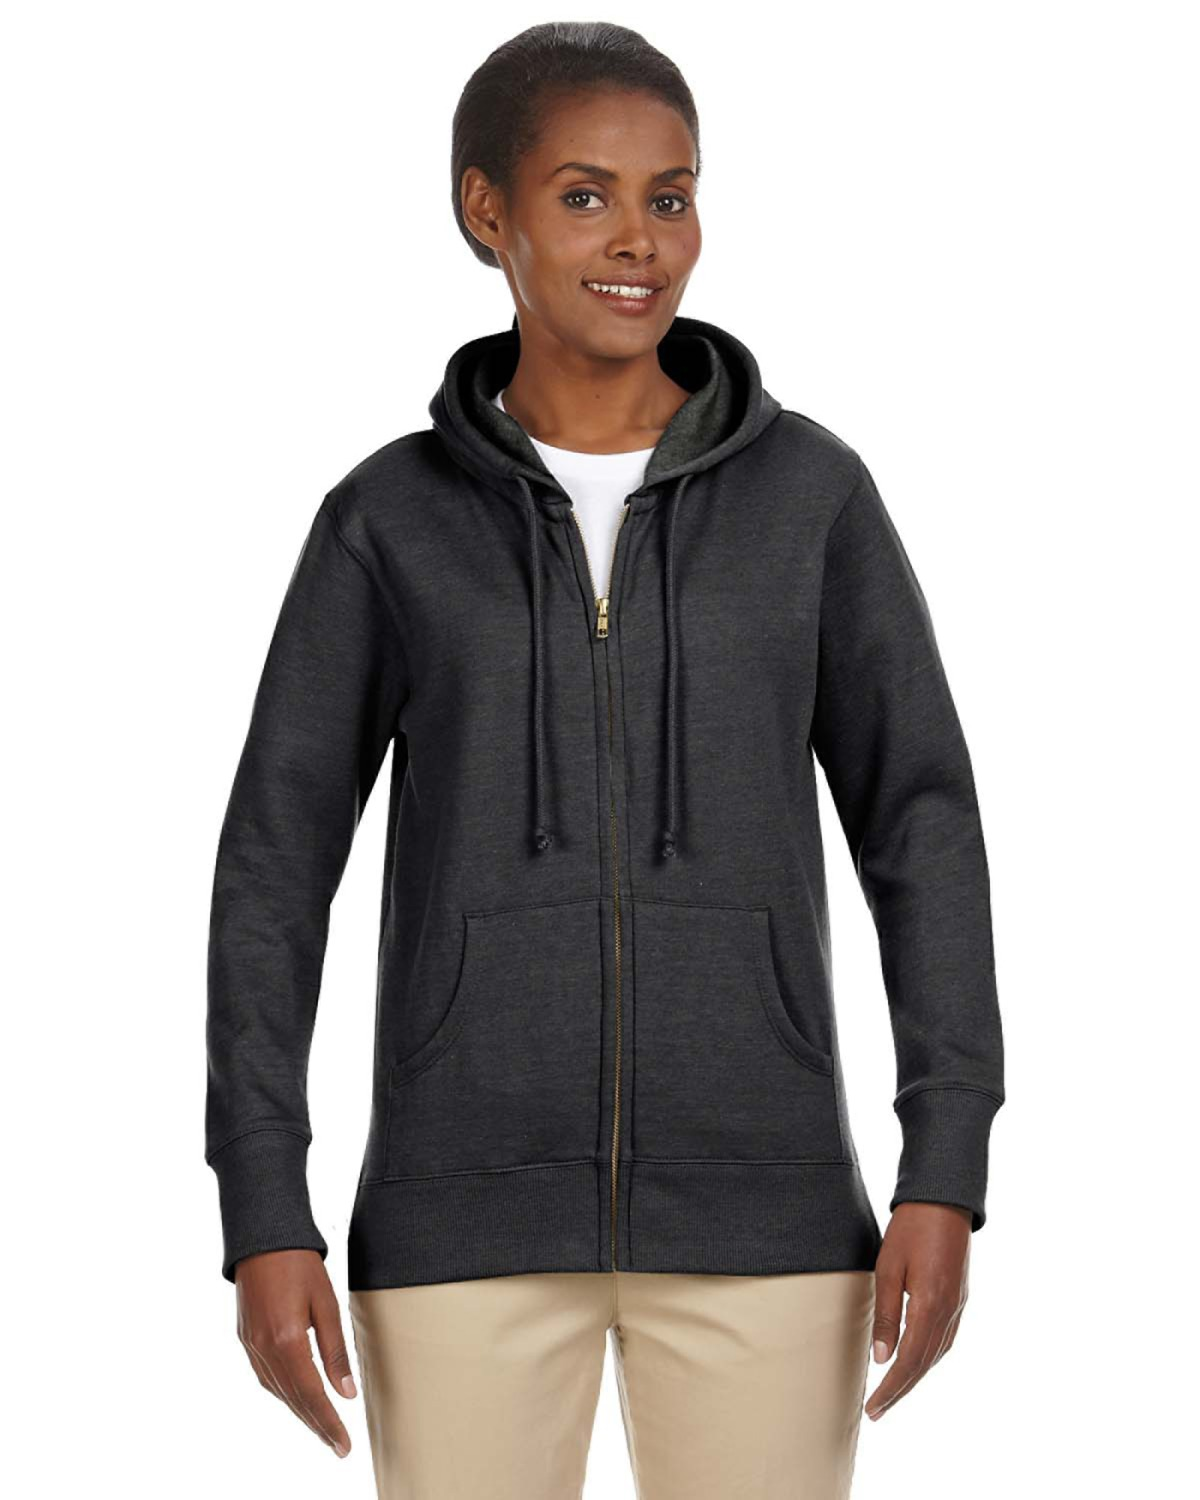 Ladies' 7 oz. Organic/Recycled Heathered Fleece Full-Zip Hood